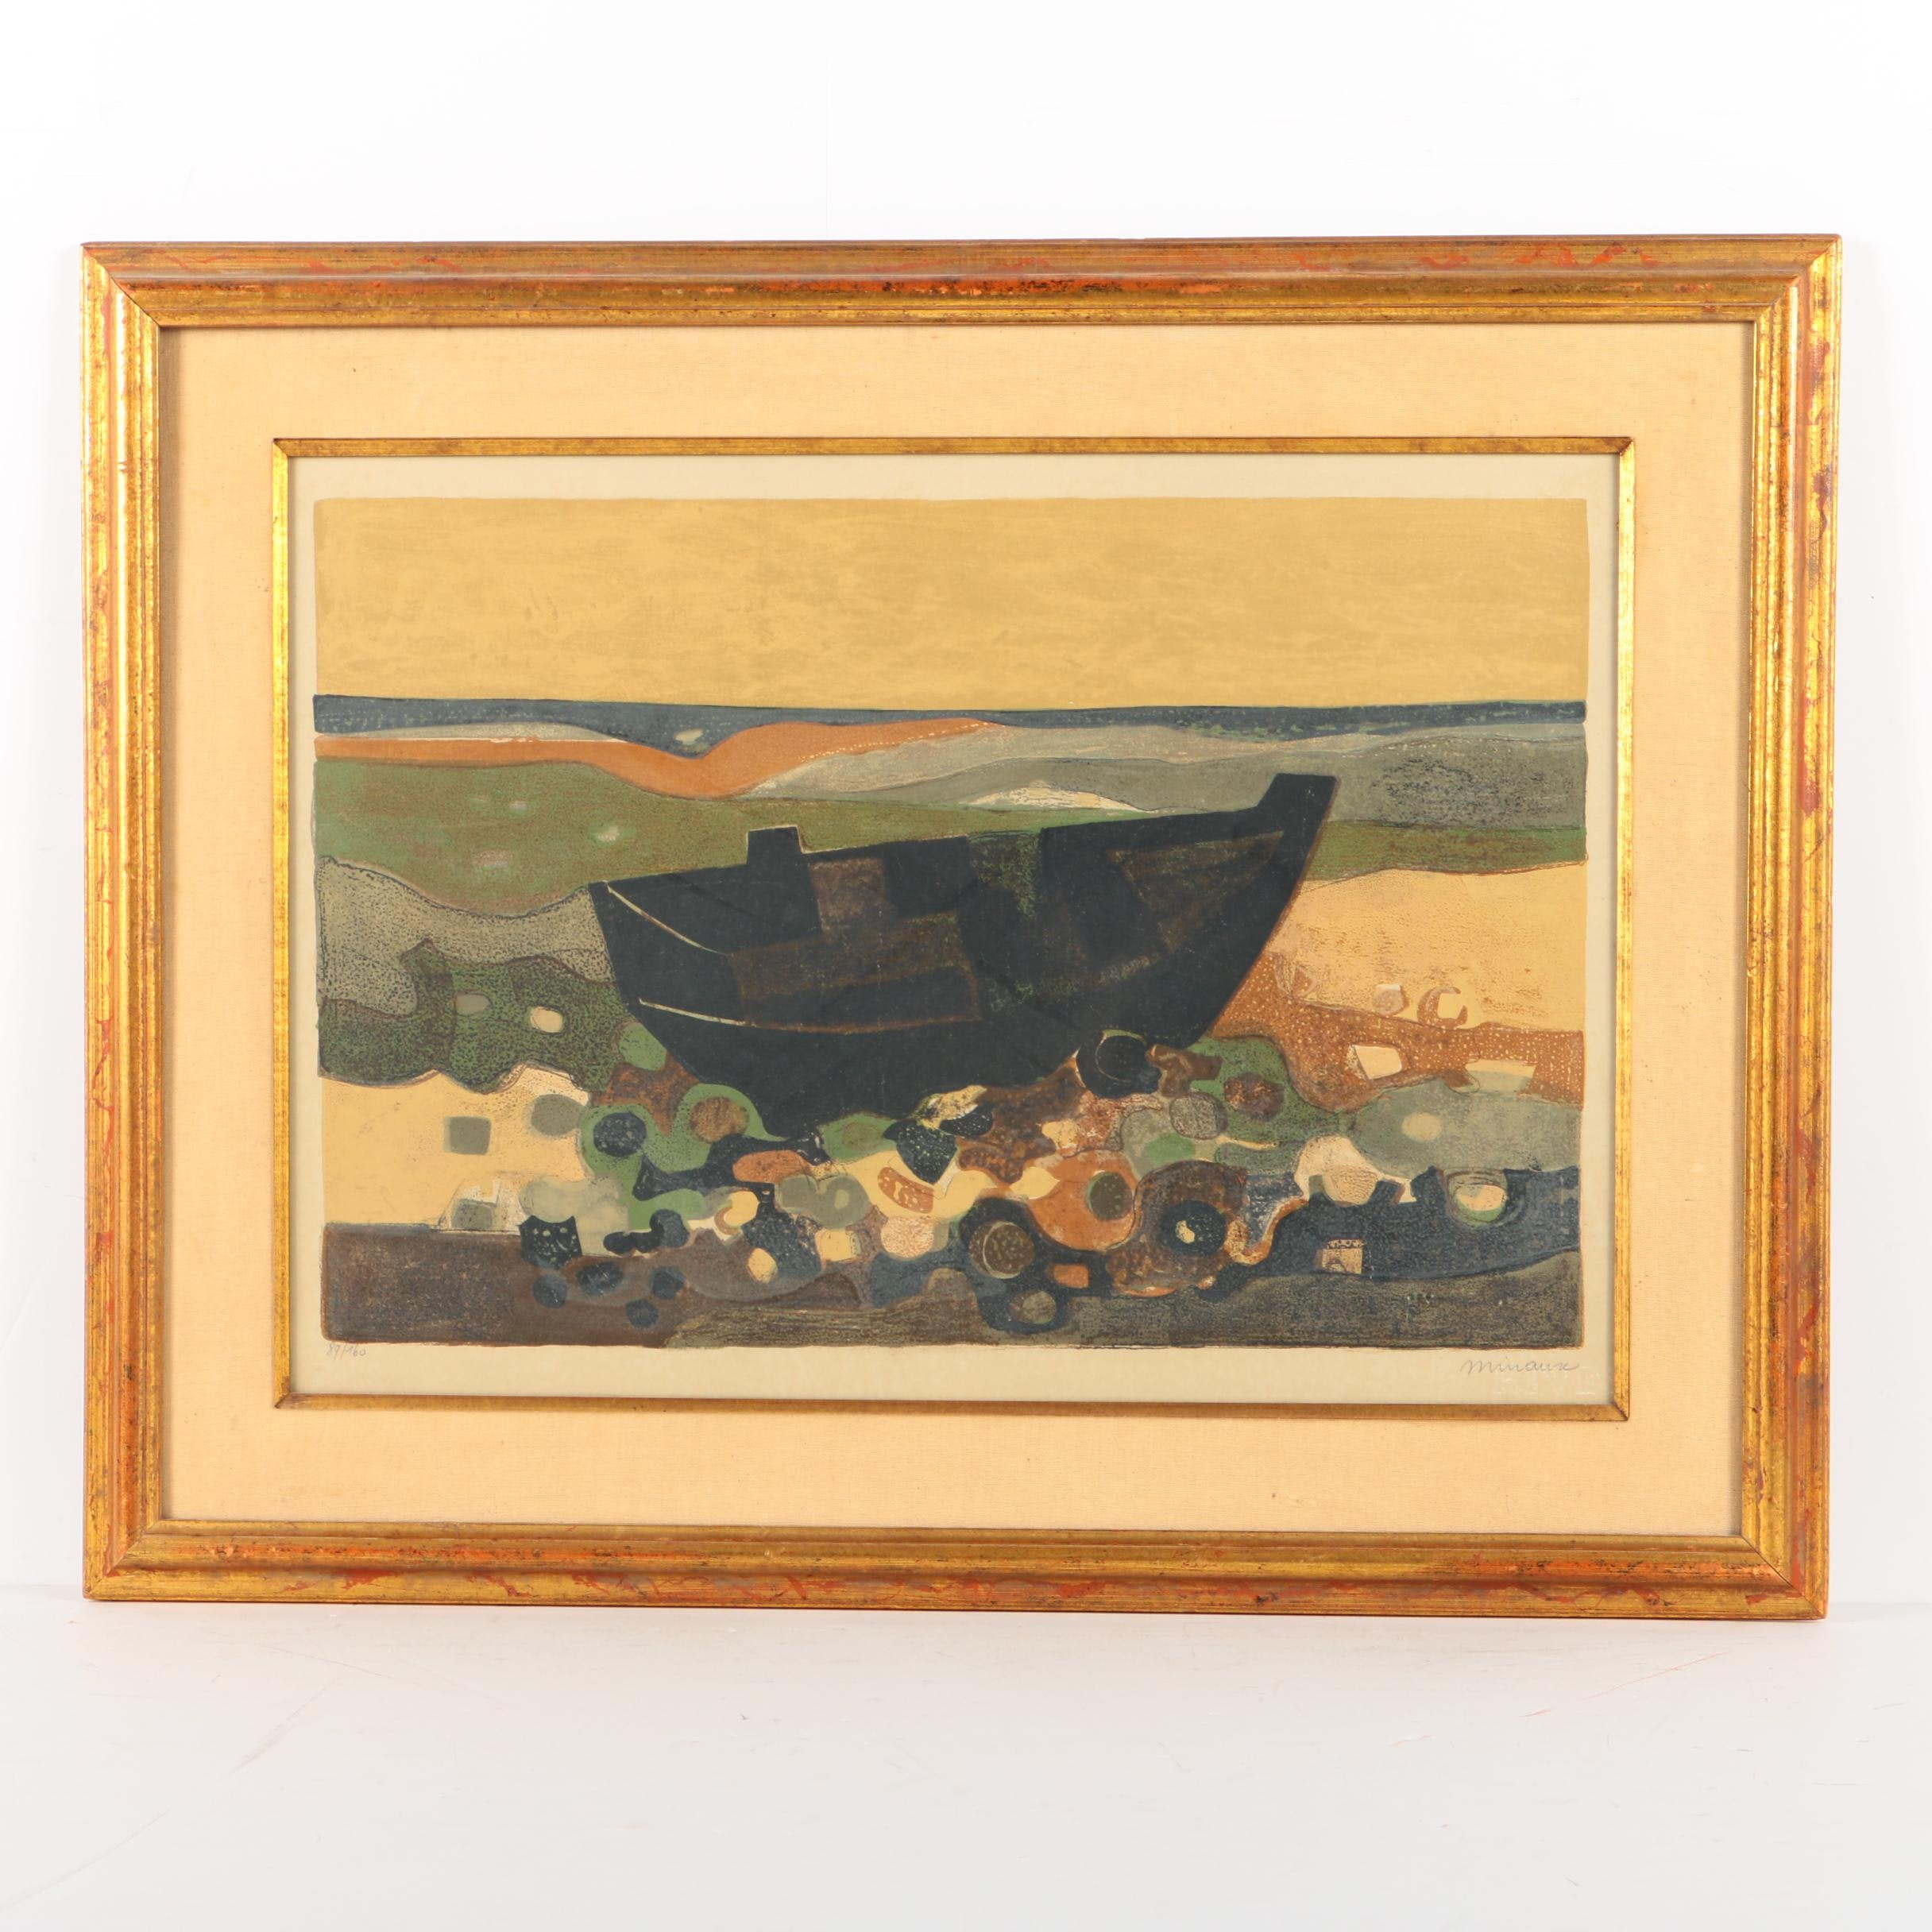 Limited Edition Lithograph on Paper of a Boat